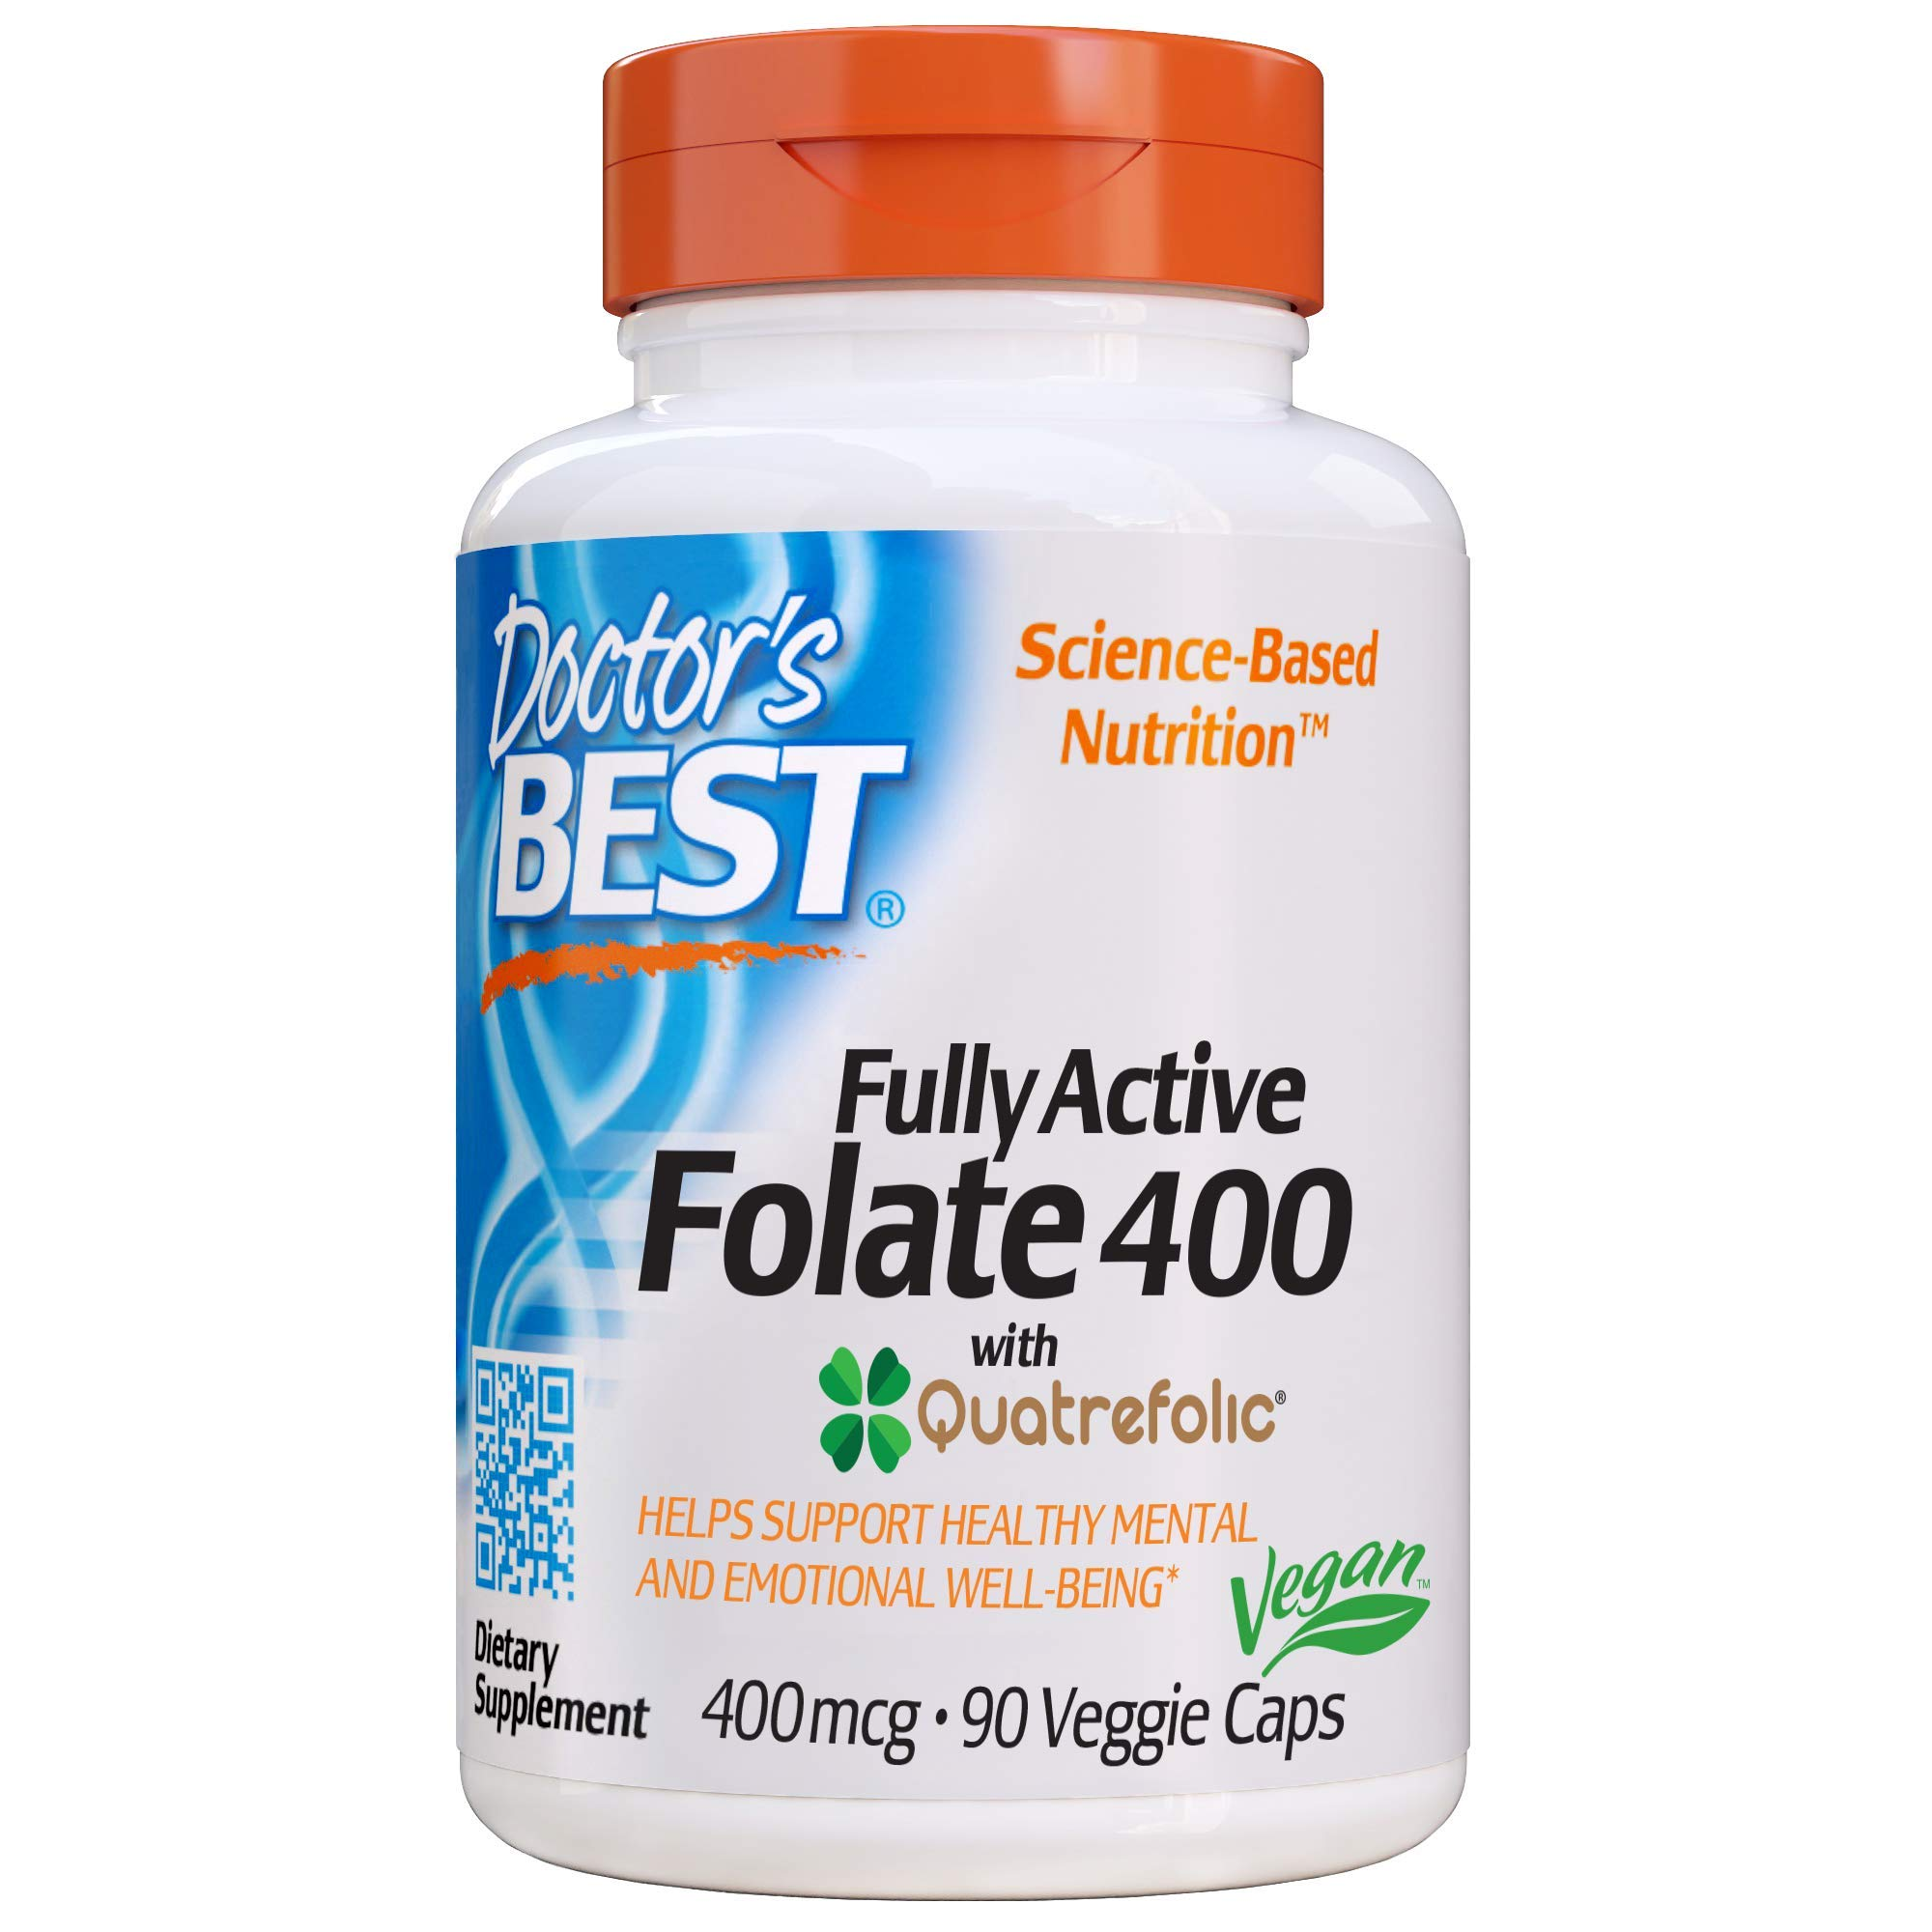 Doctor's Best Fully Active Folate with Quatrefolic NonGMO Vegan Gluten Free 400 mcg Veggie Caps, 90 Count